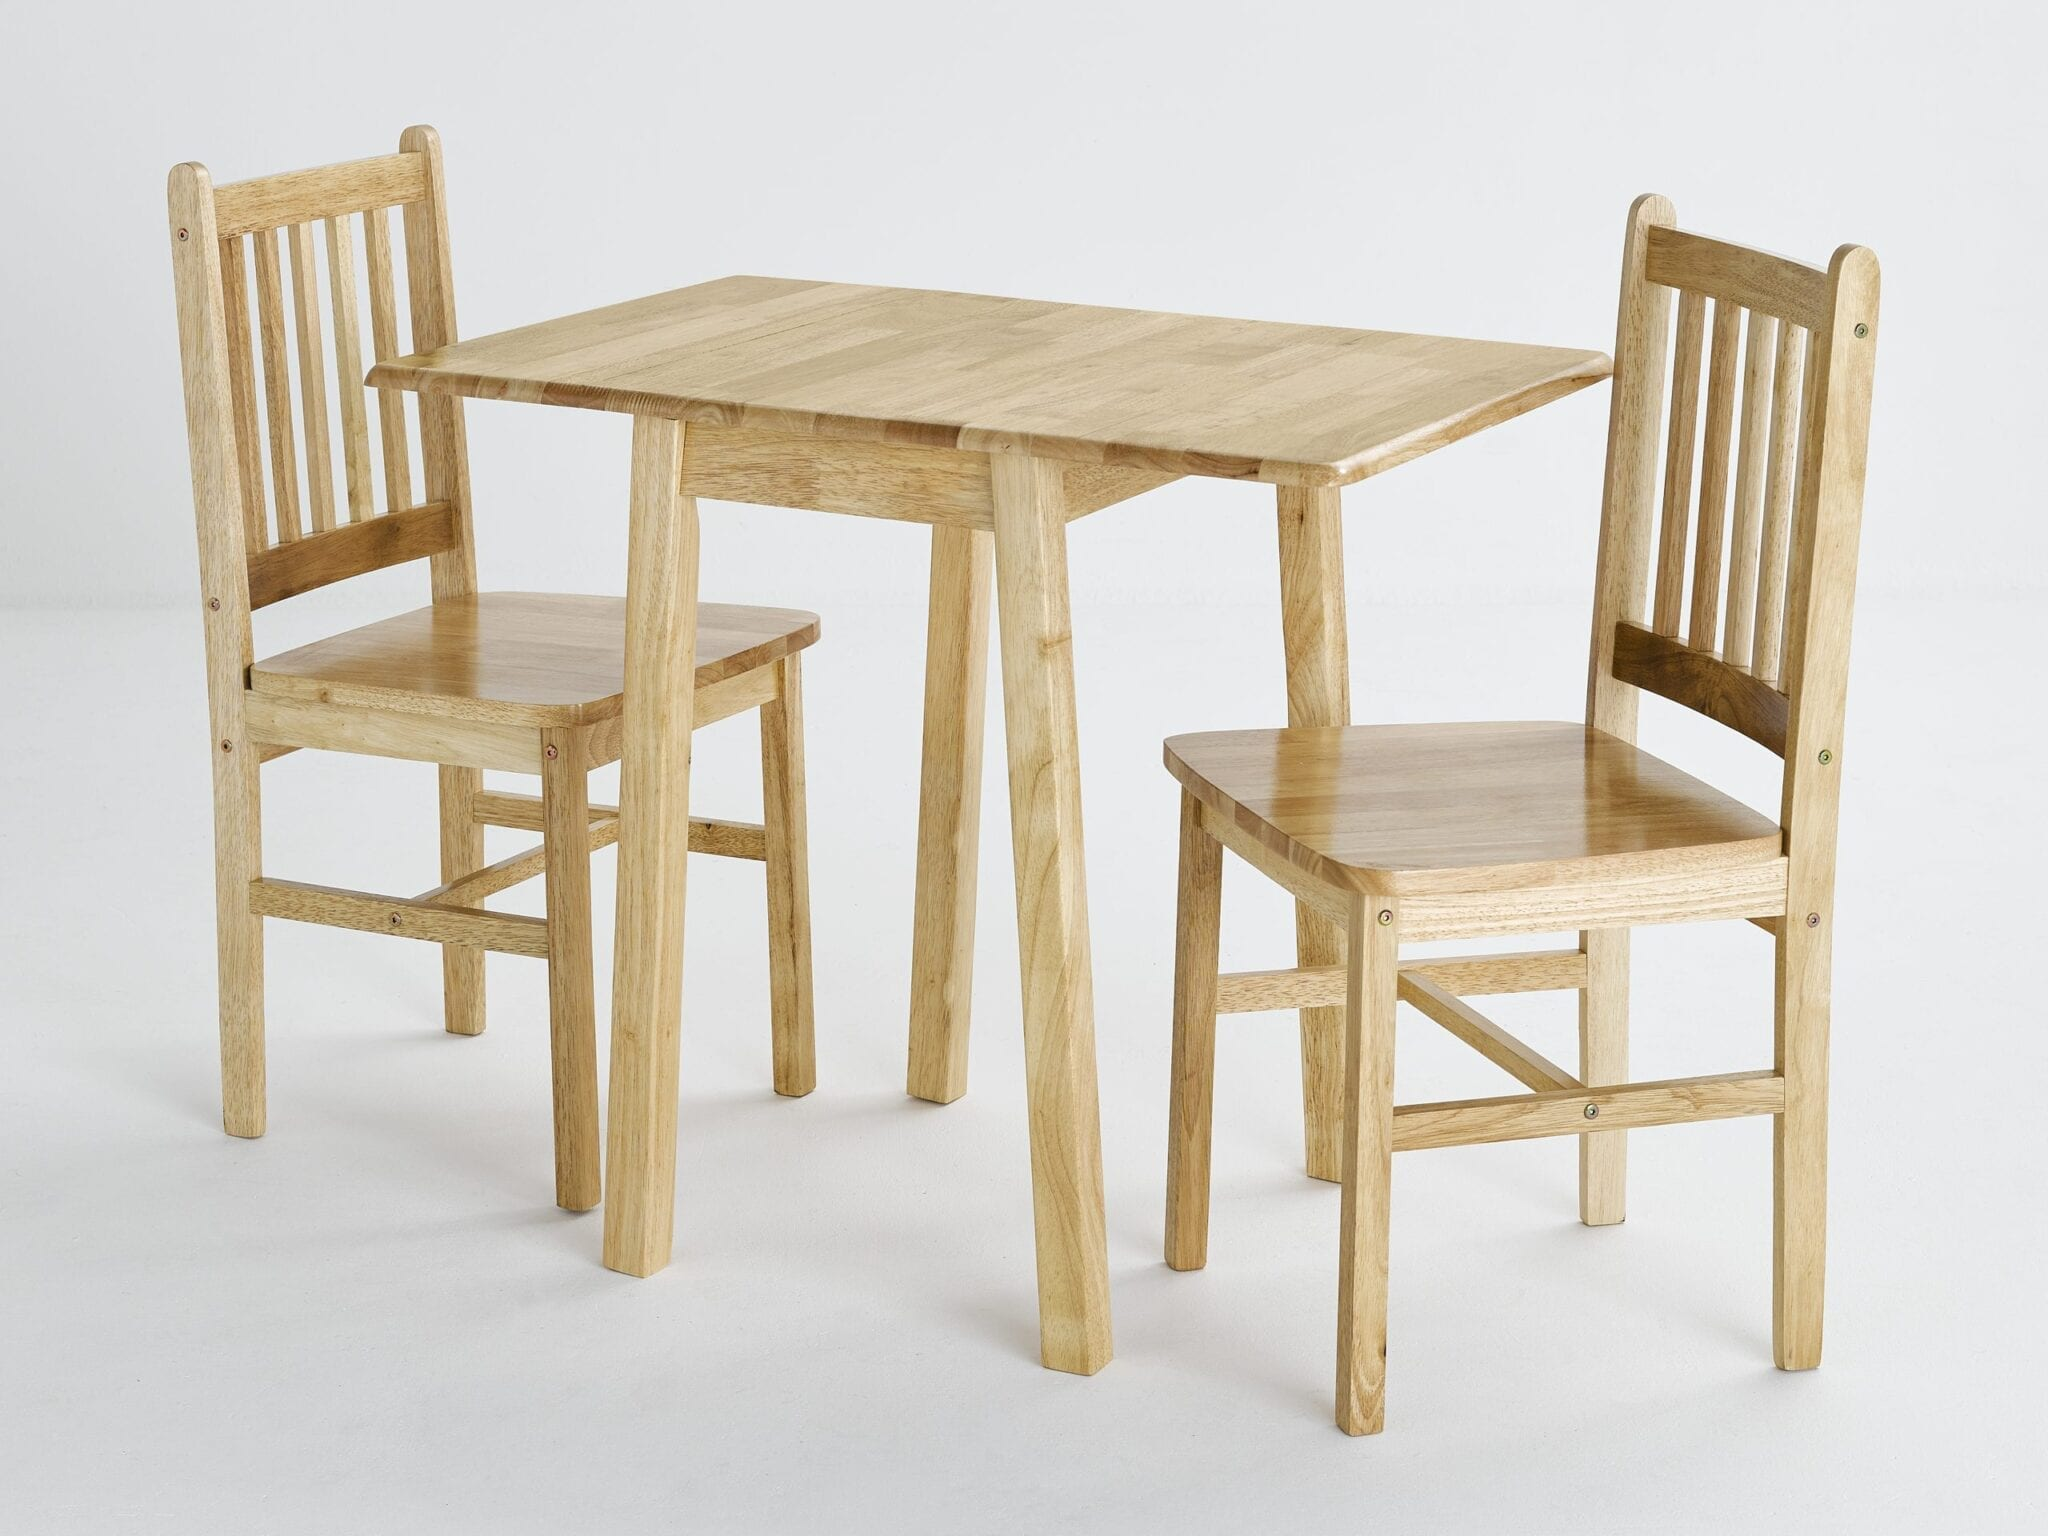 Ali Table 2 Chairs - Extending